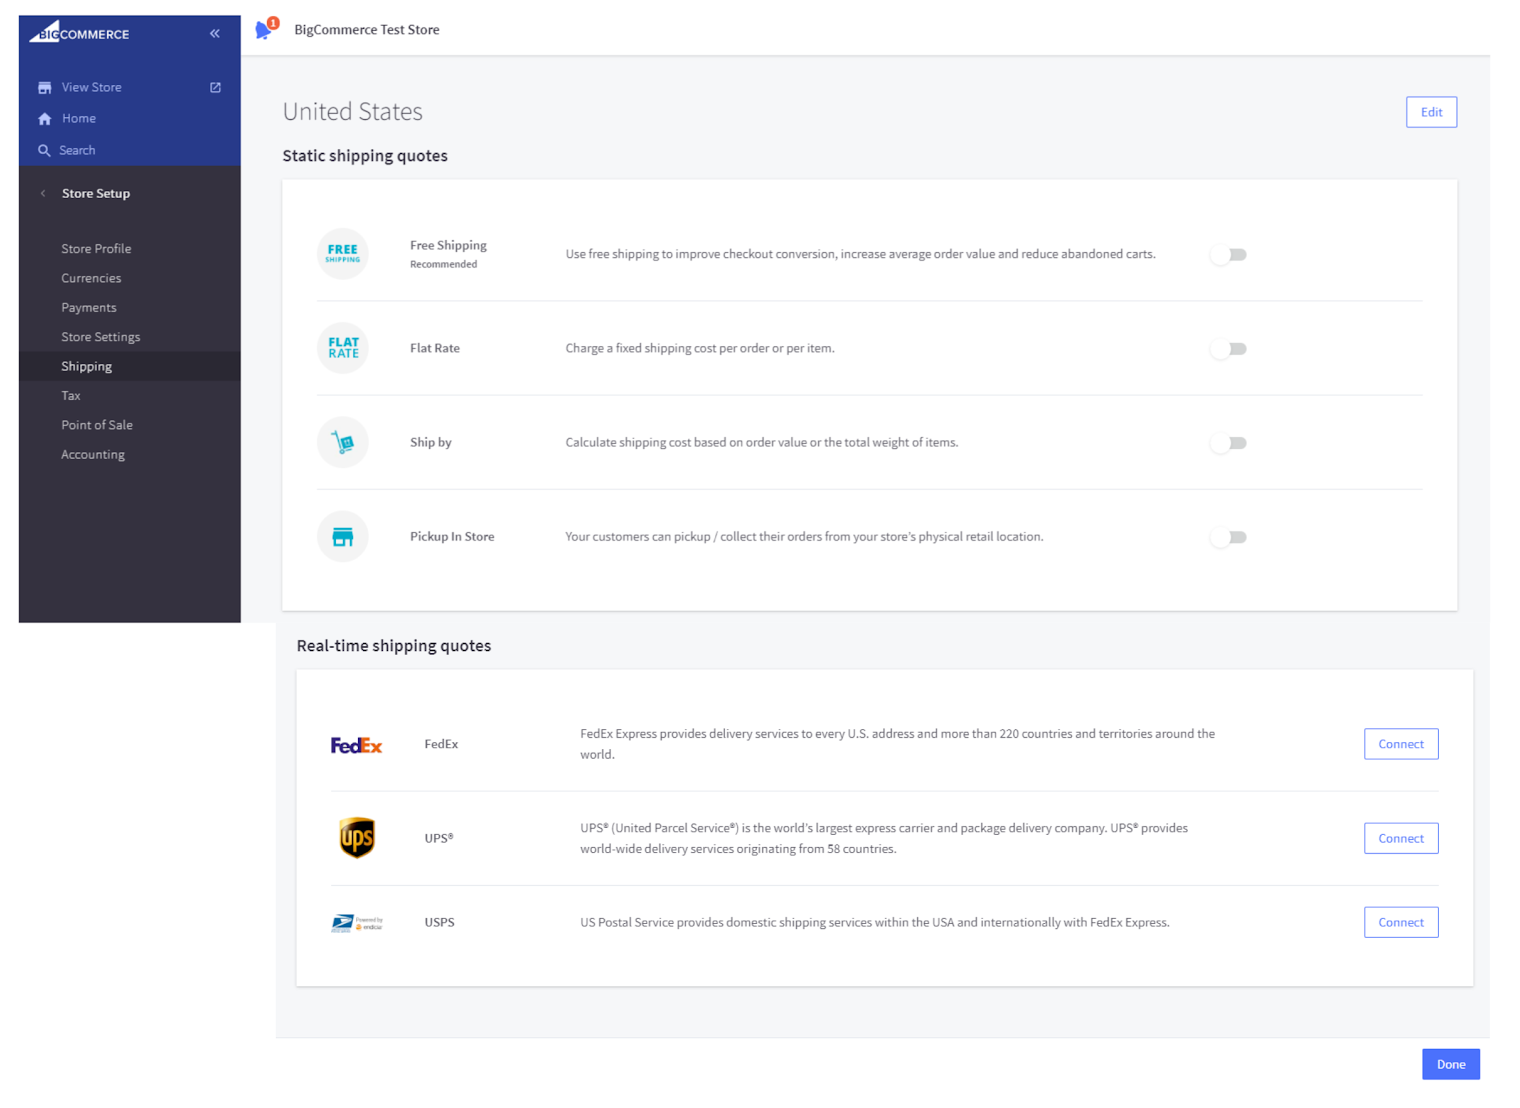 Bigcommerce Static Shipping quotes options